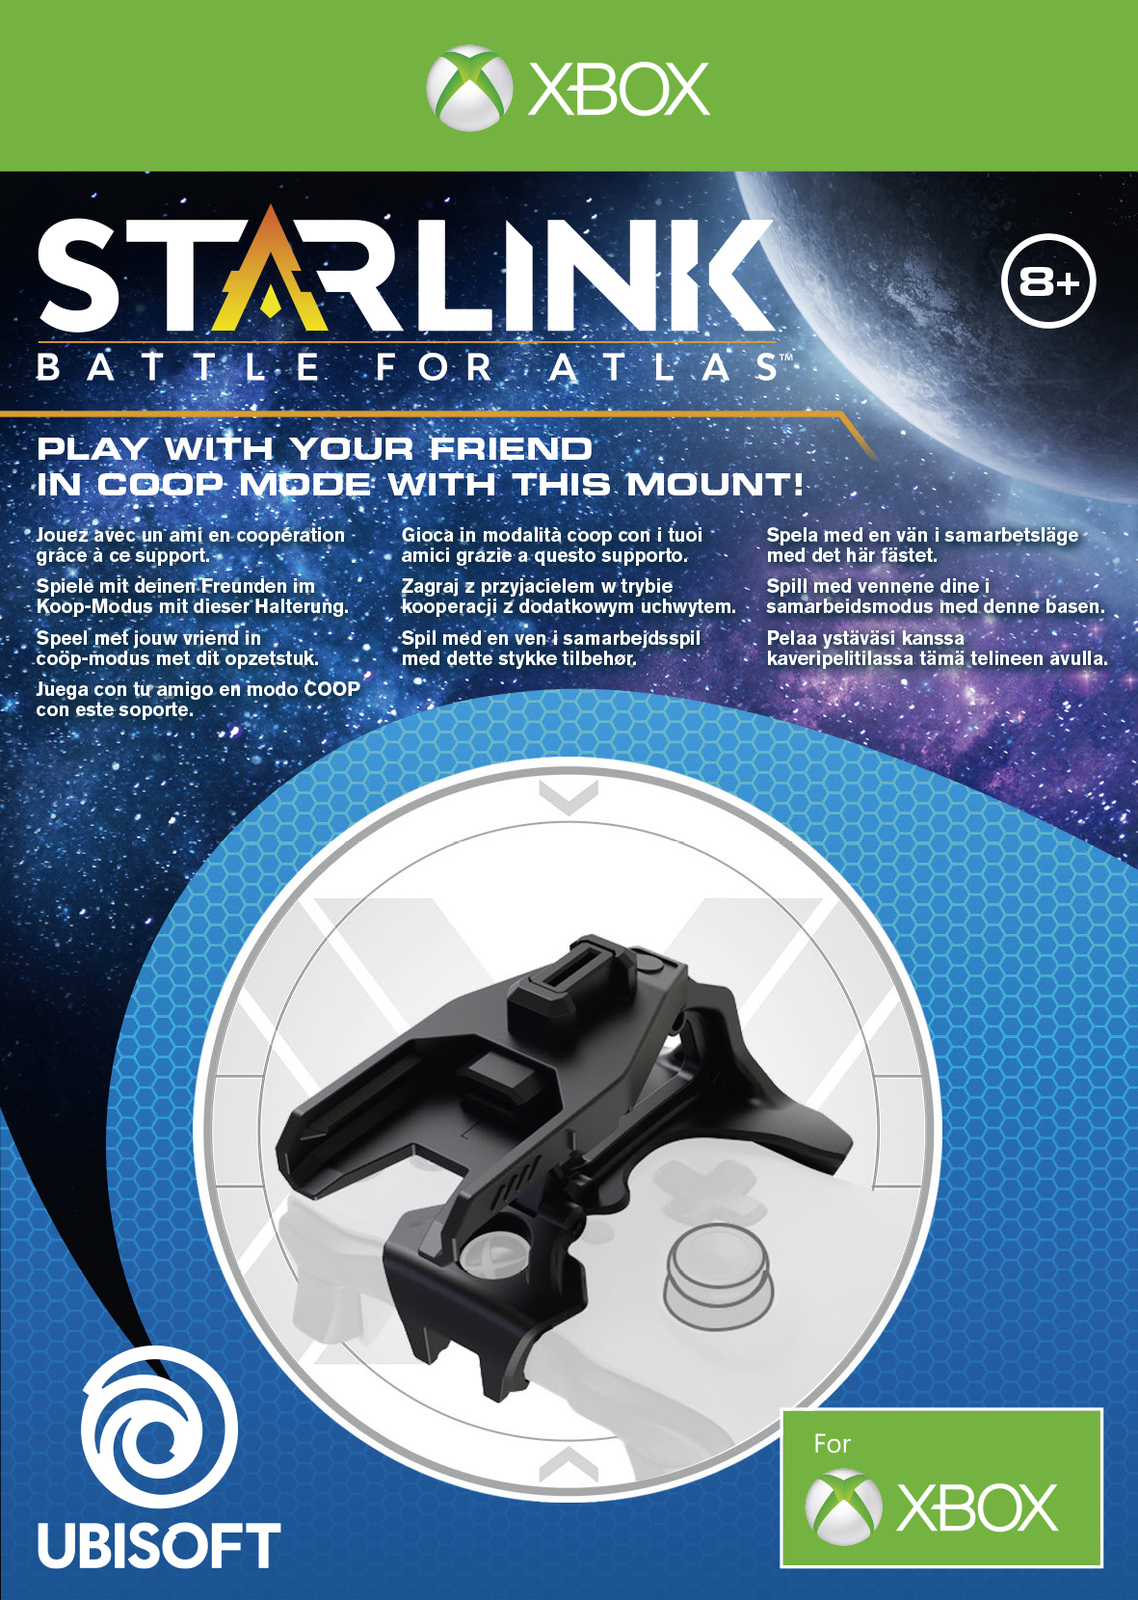 Starlink: Battle for Atlas Xbox One Controller Mount for Xbox One image